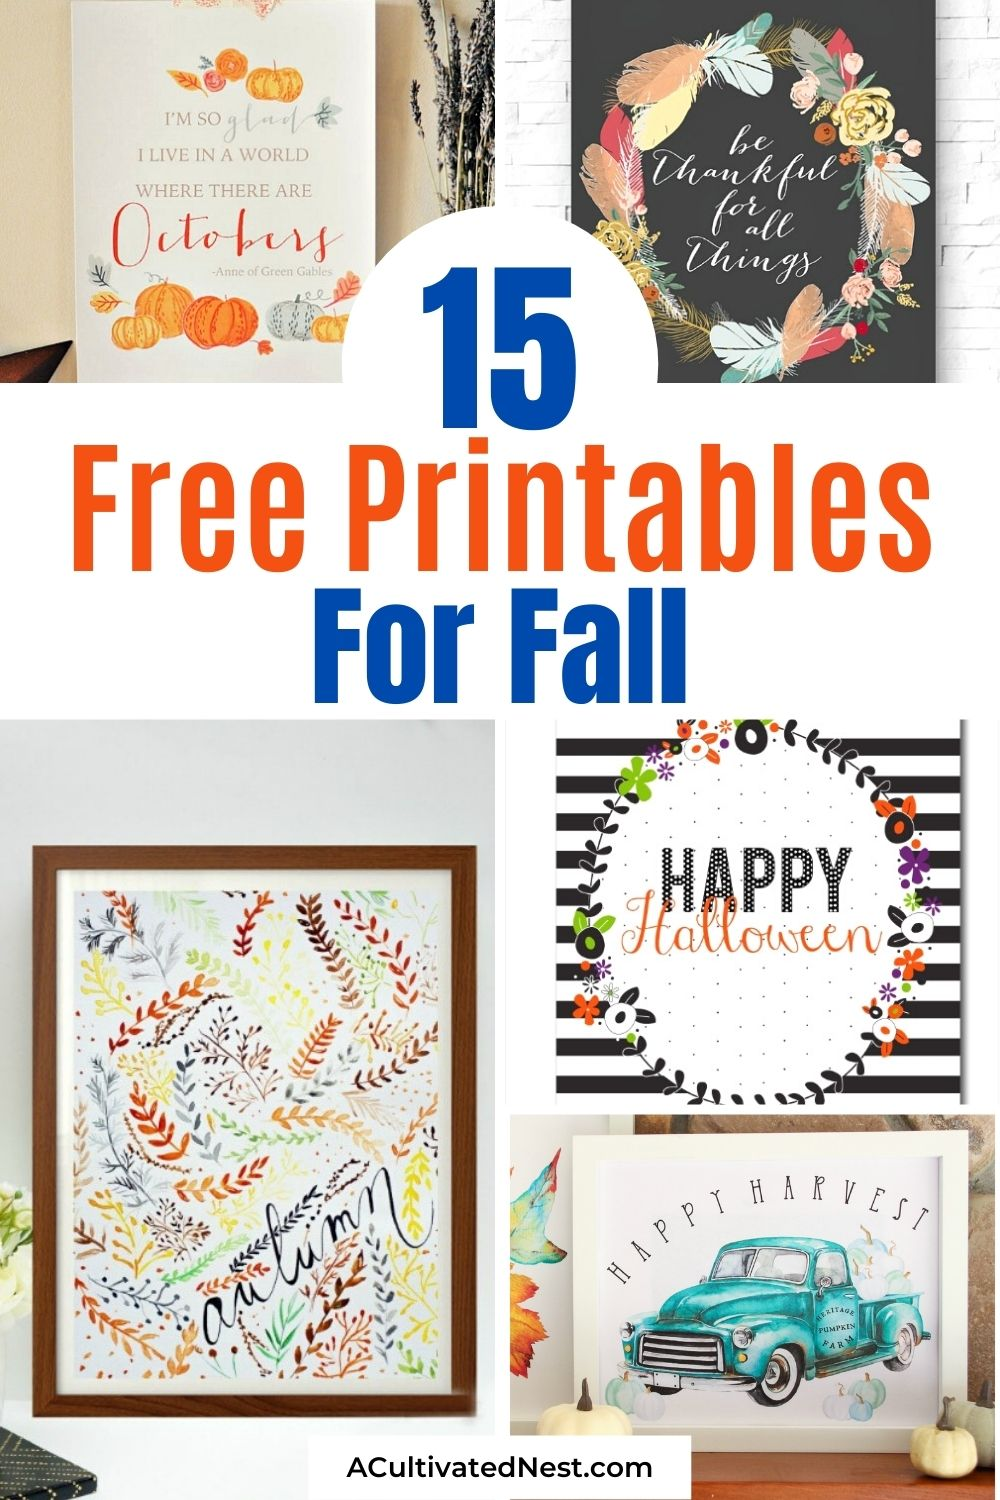 15 Pretty Free Fall Printables- These free printables for fall, Thanksgiving, and Halloween will help you update your home's decor on a budget! There are so many beautiful free wall art printables to choose from!   #fallPrintables #HalloweenPrintables #fallDecor #printables #ACultivatedNest